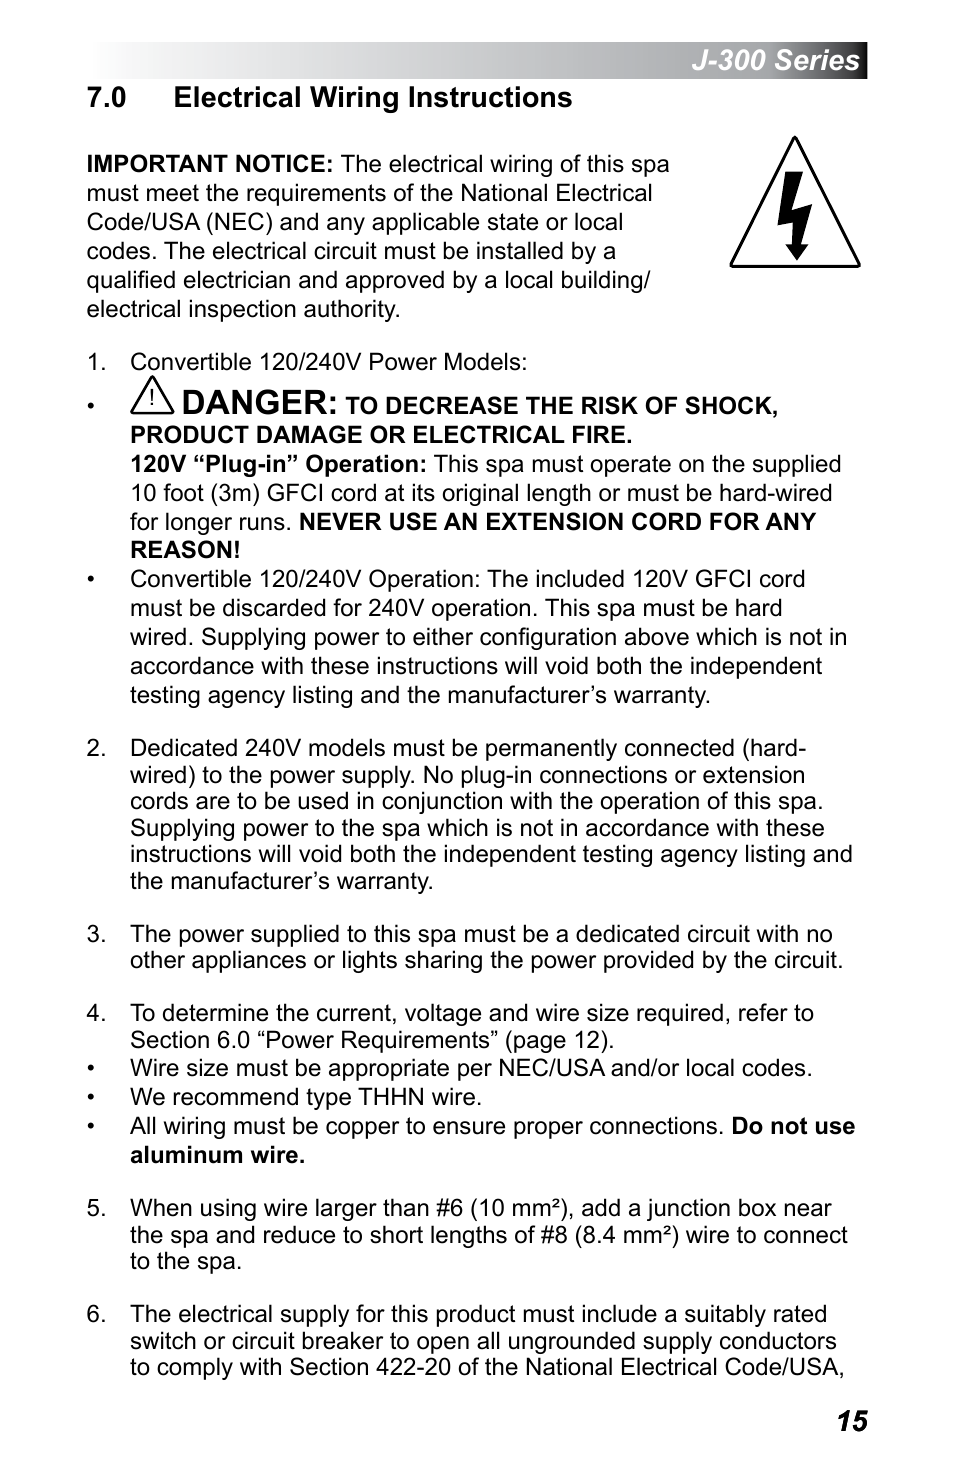 0 electrical wiring instructions danger jacuzzi j 355 user 0 electrical wiring instructions danger jacuzzi j 355 user manual page 19 68 keyboard keysfo Choice Image